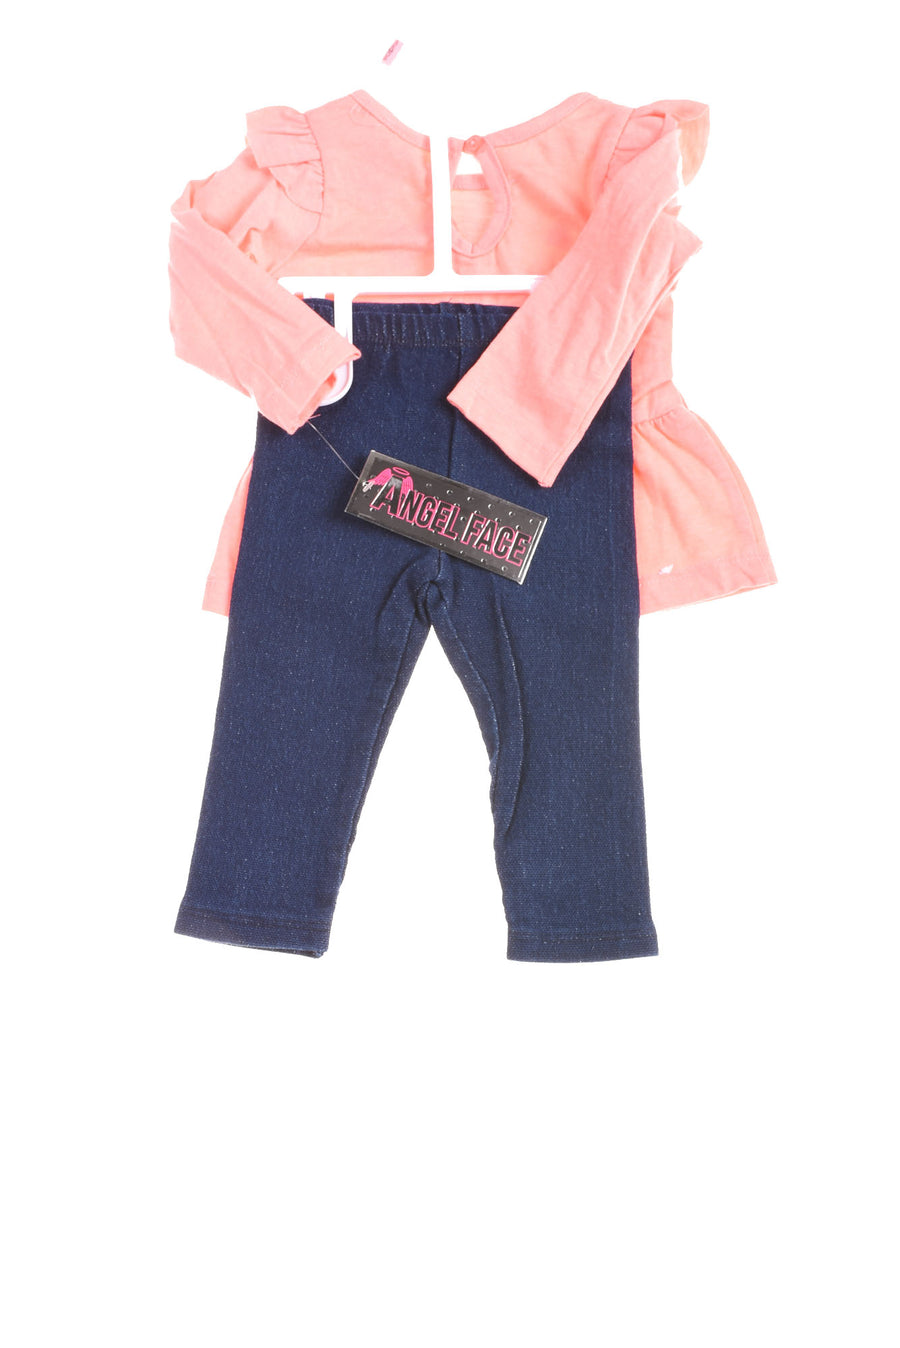 Baby Girl's Outfit By Angel Face